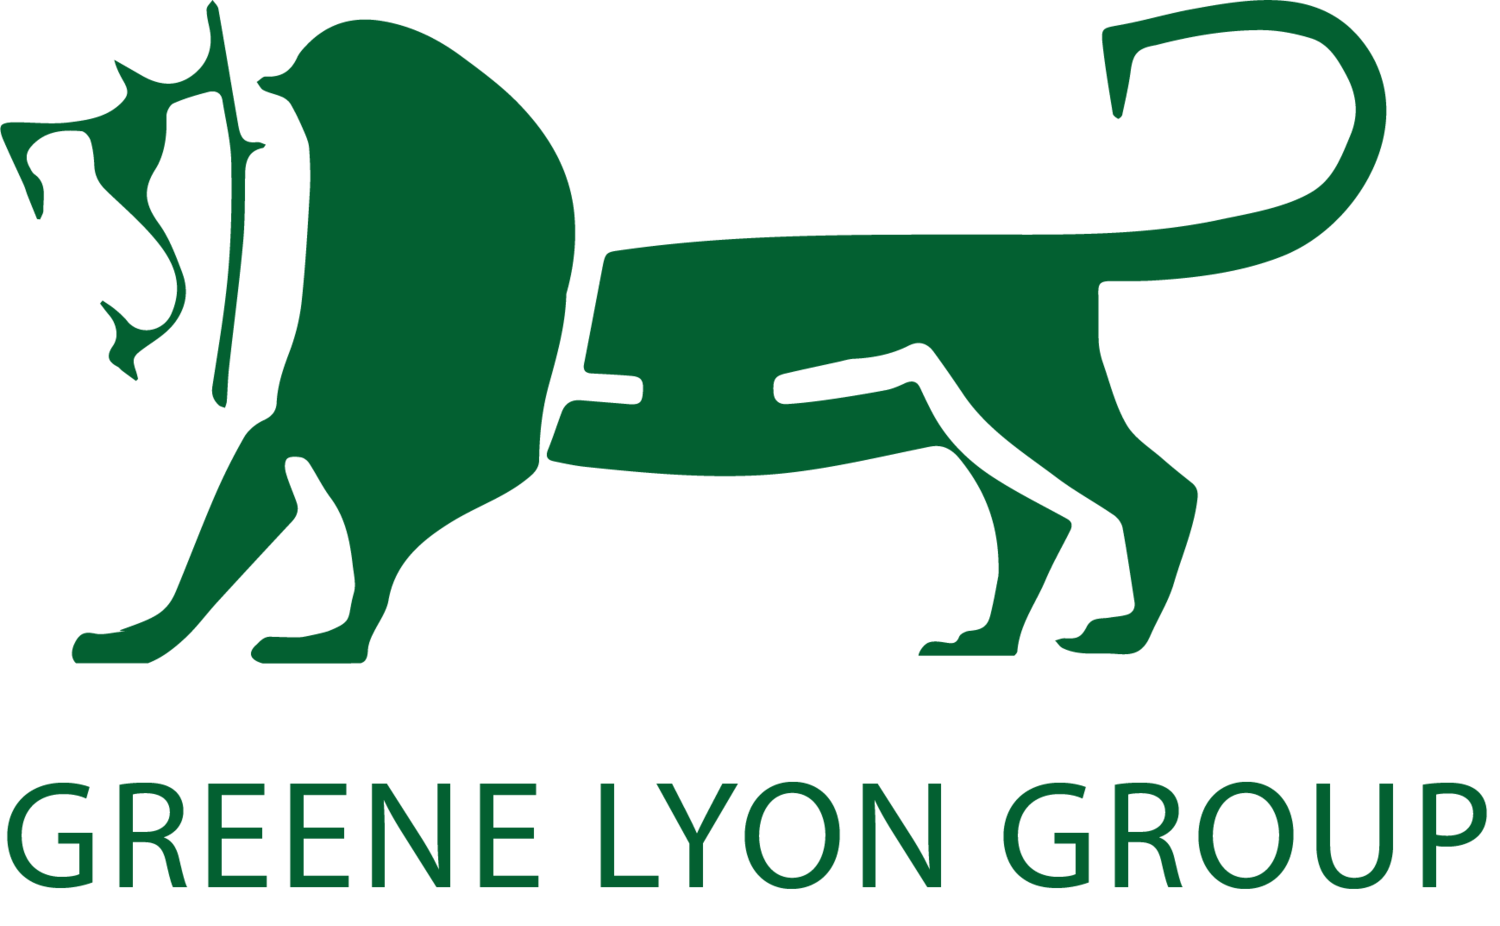 Greene Lyon Group